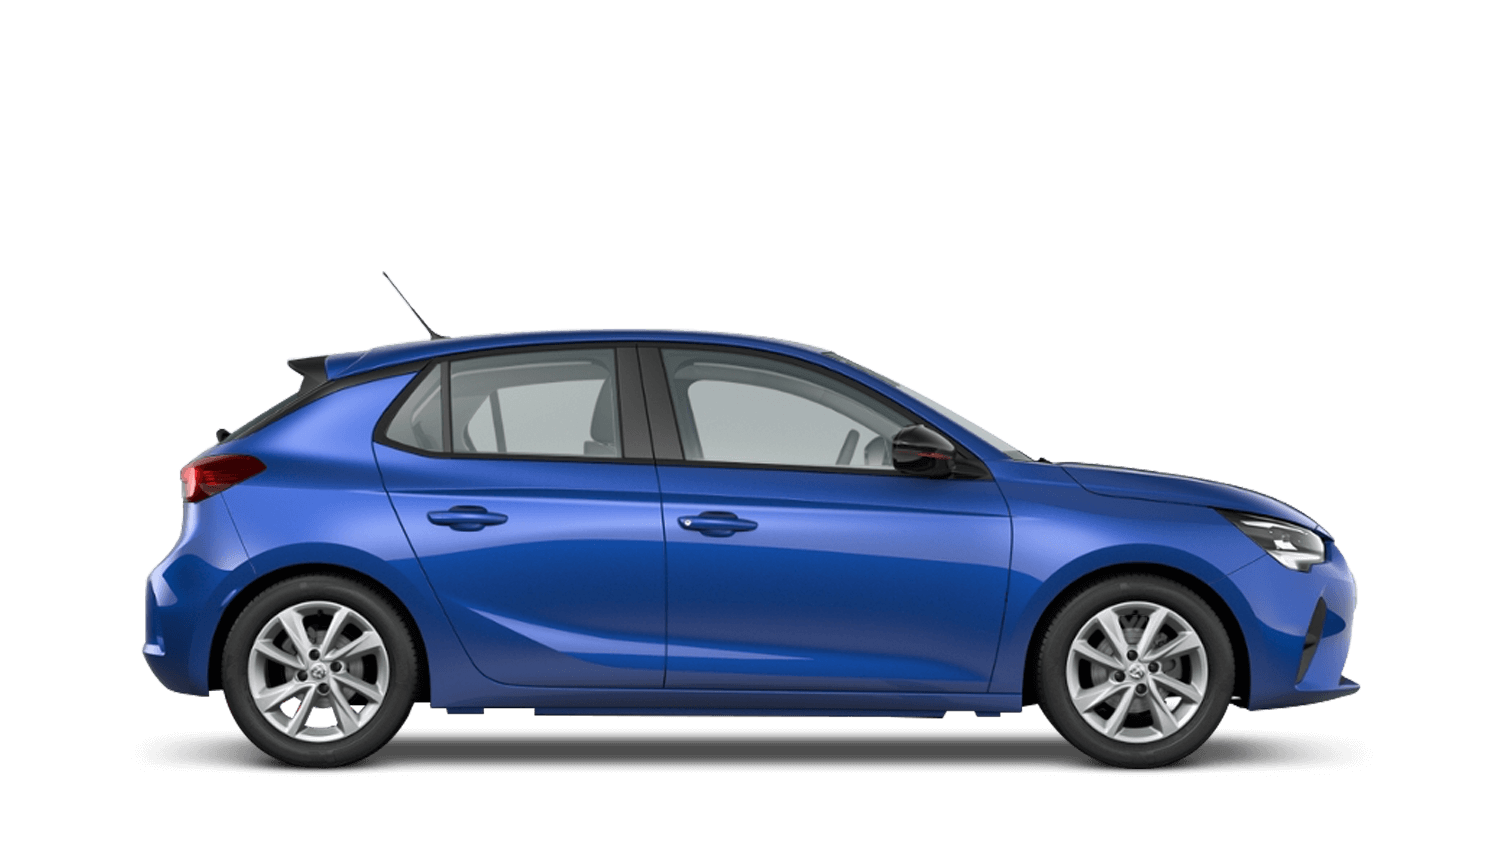 Voltaic Blue (Metallic) All-New Vauxhall Corsa